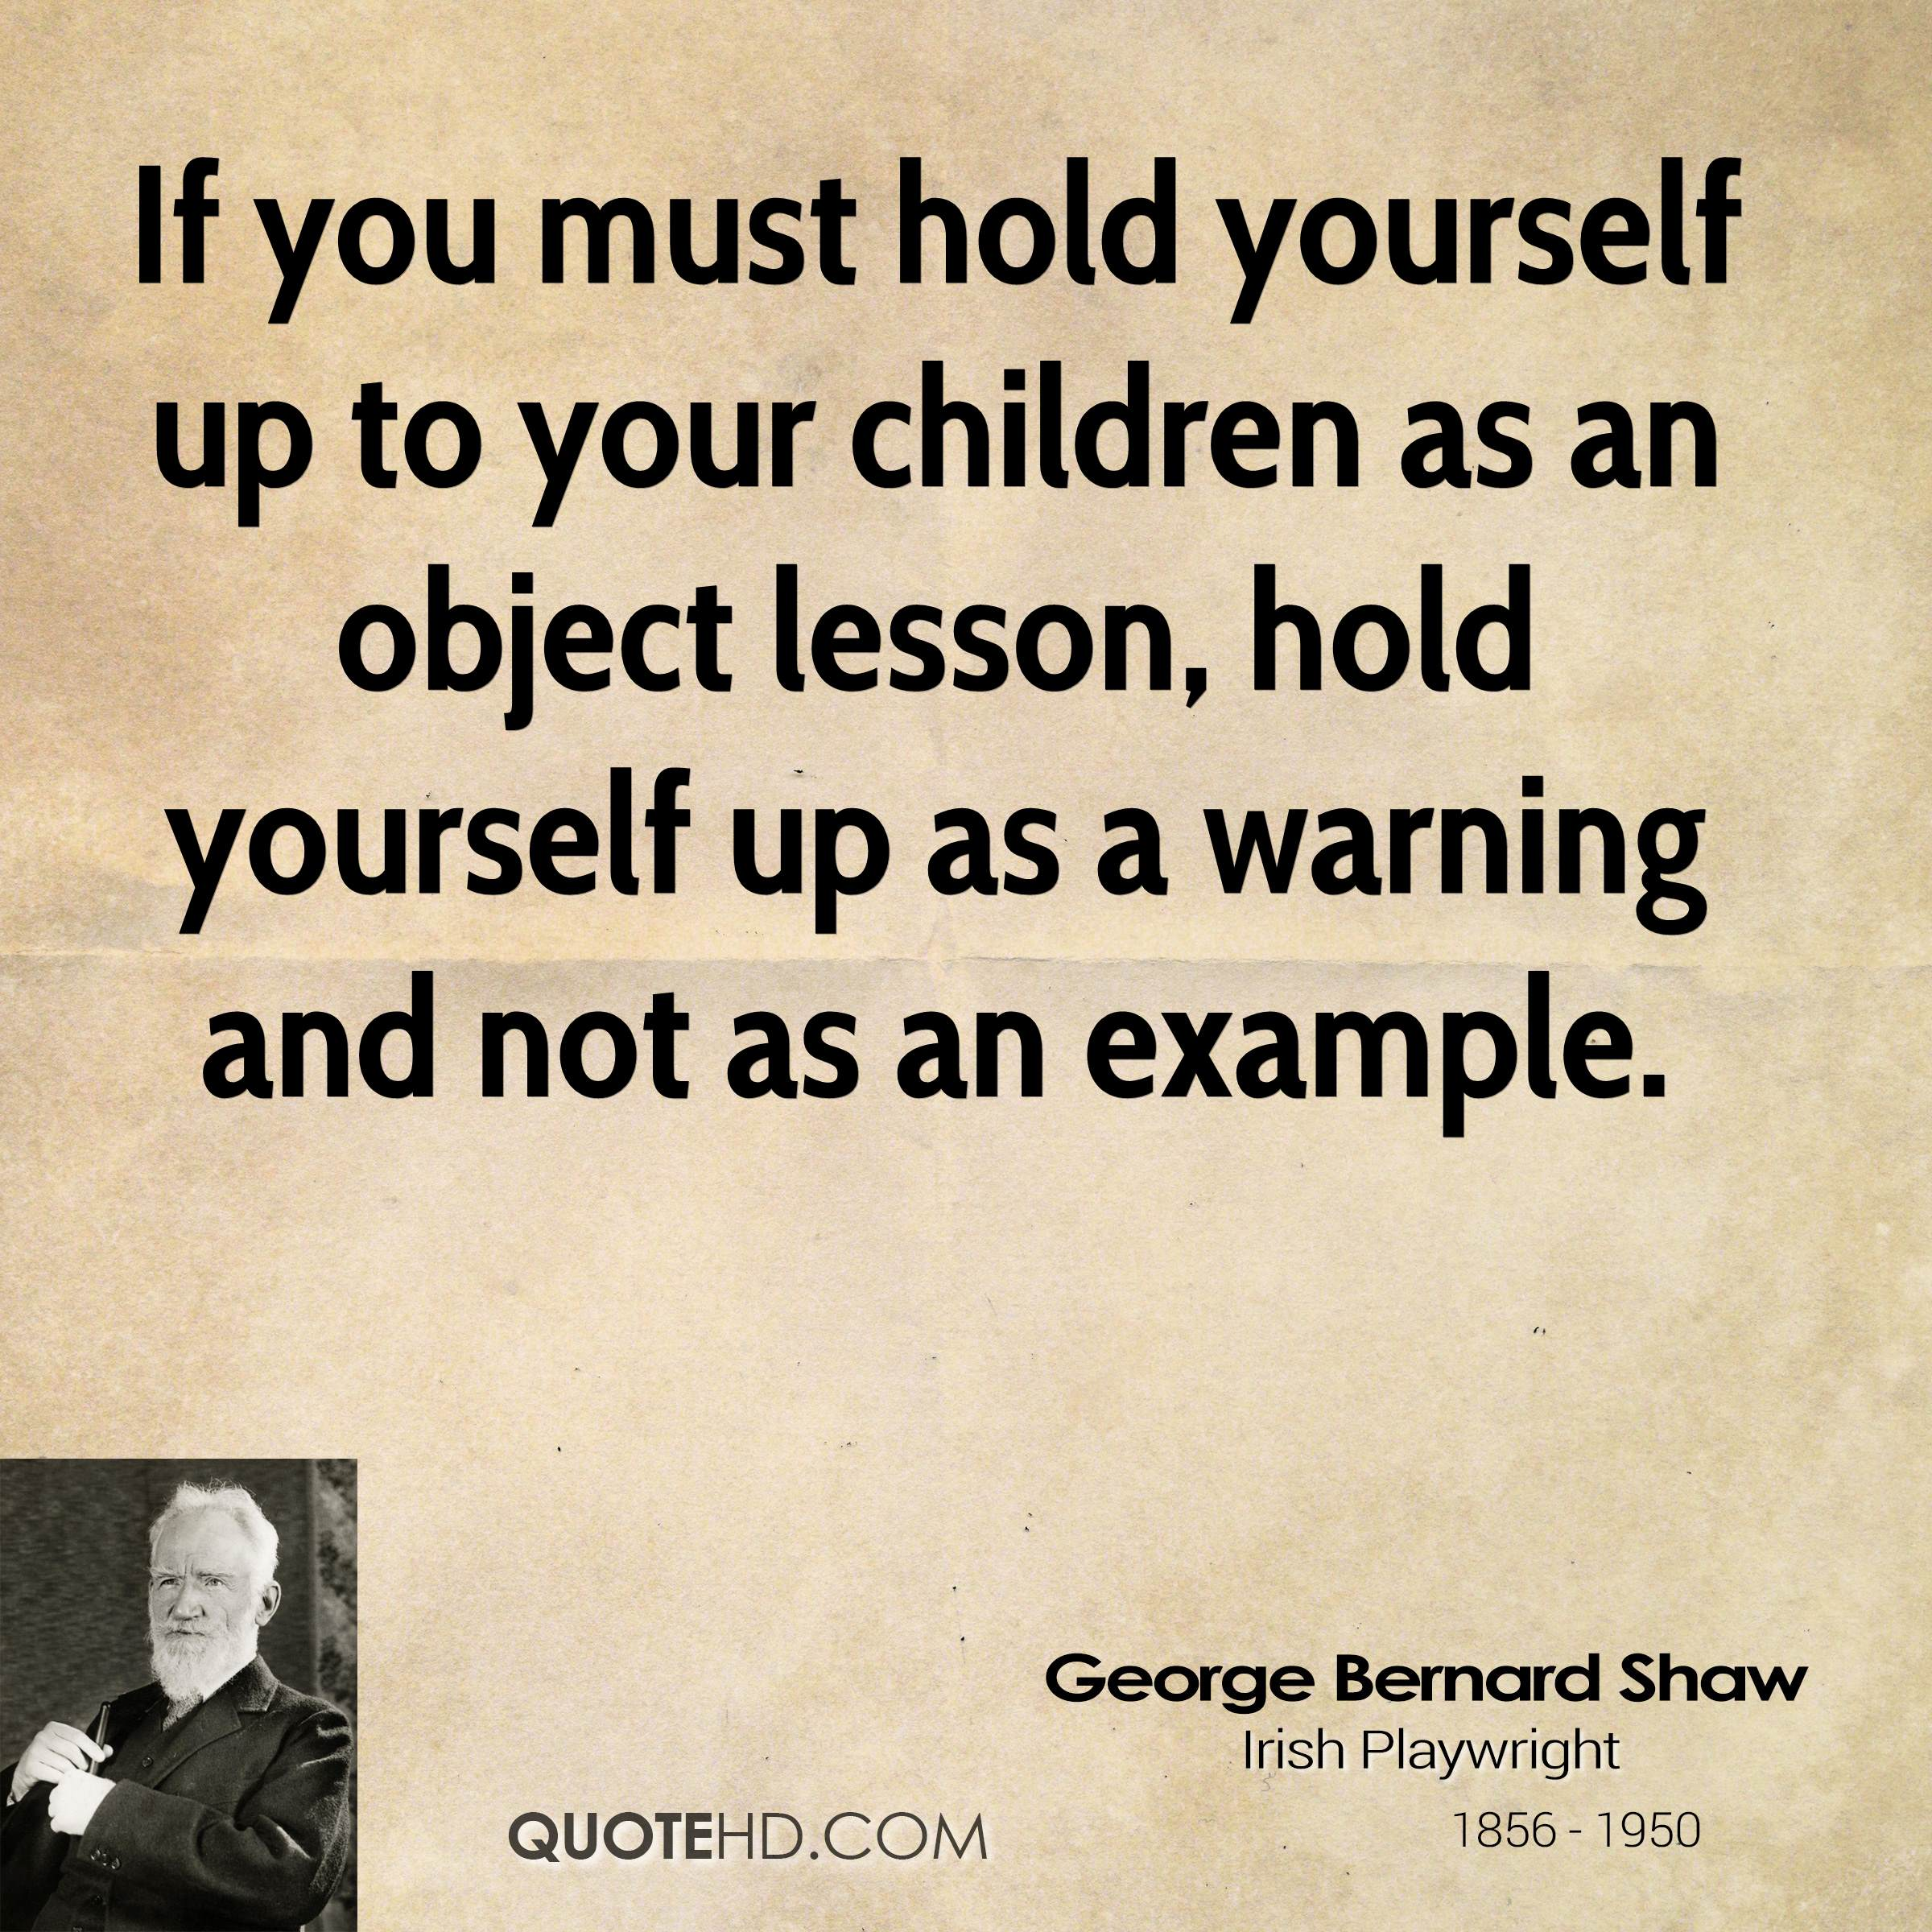 If you must hold yourself up to your children as an object lesson, hold yourself up as a warning and not as an example.